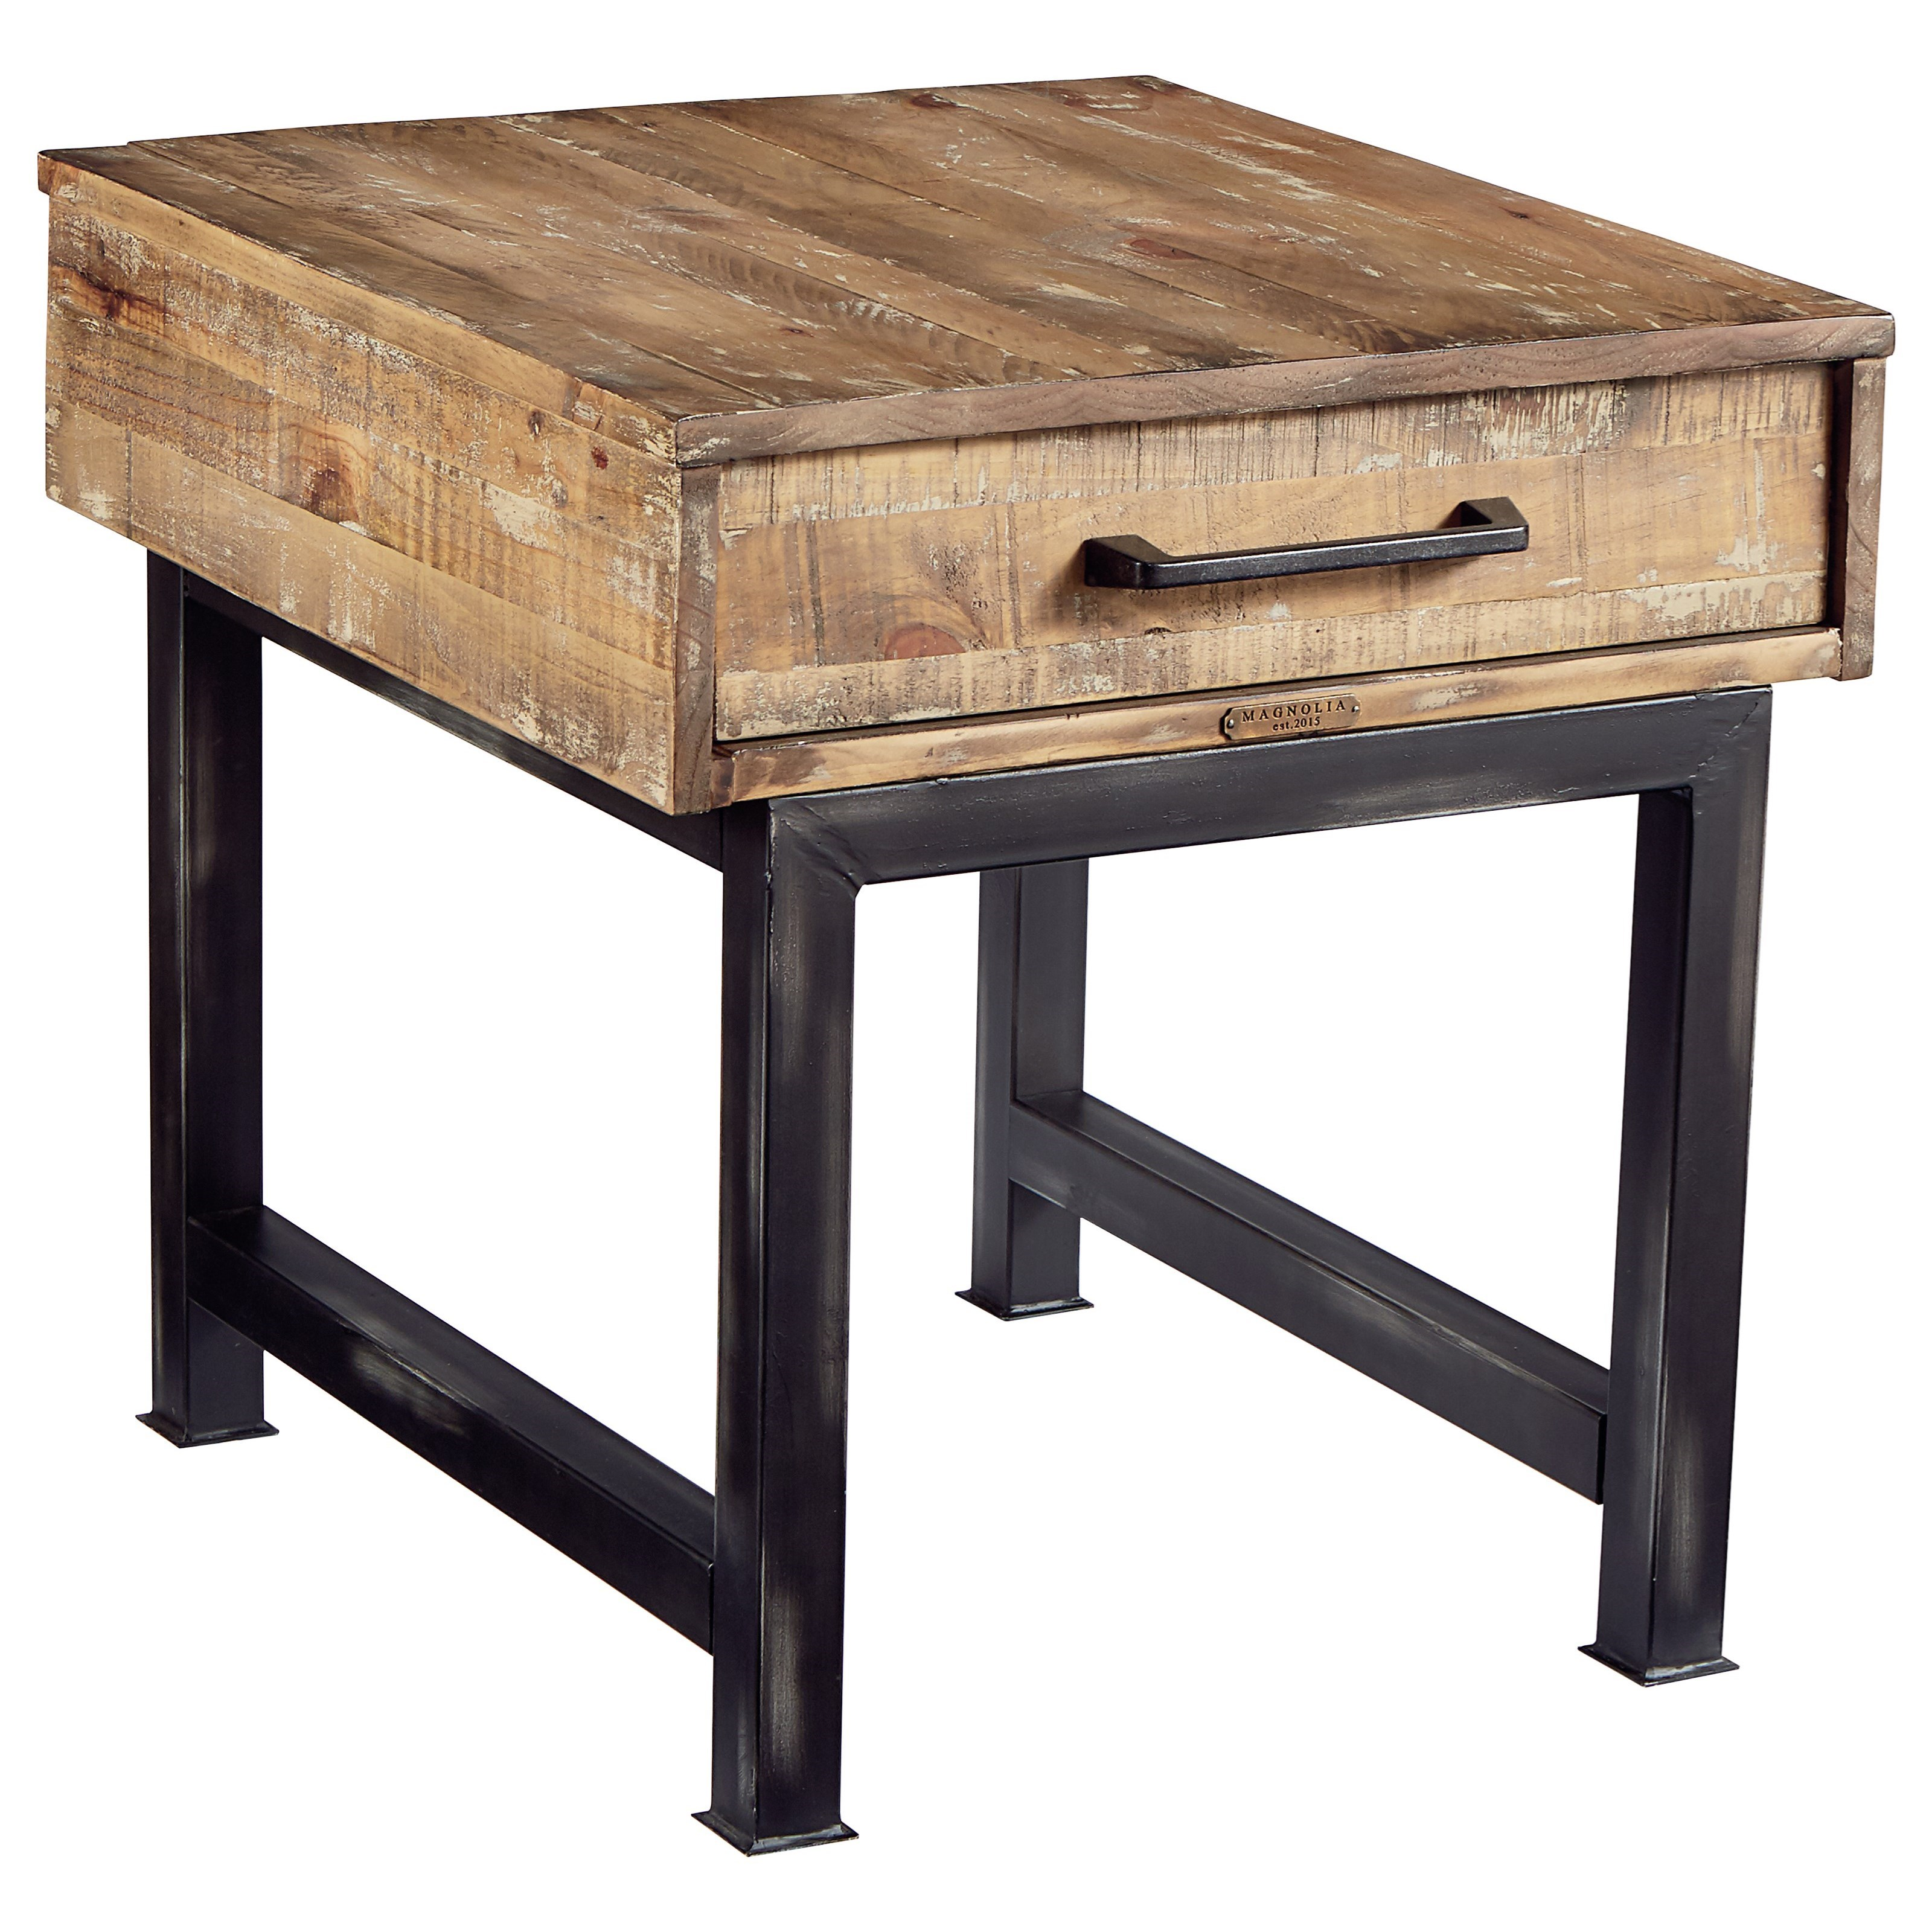 End table end table industrial